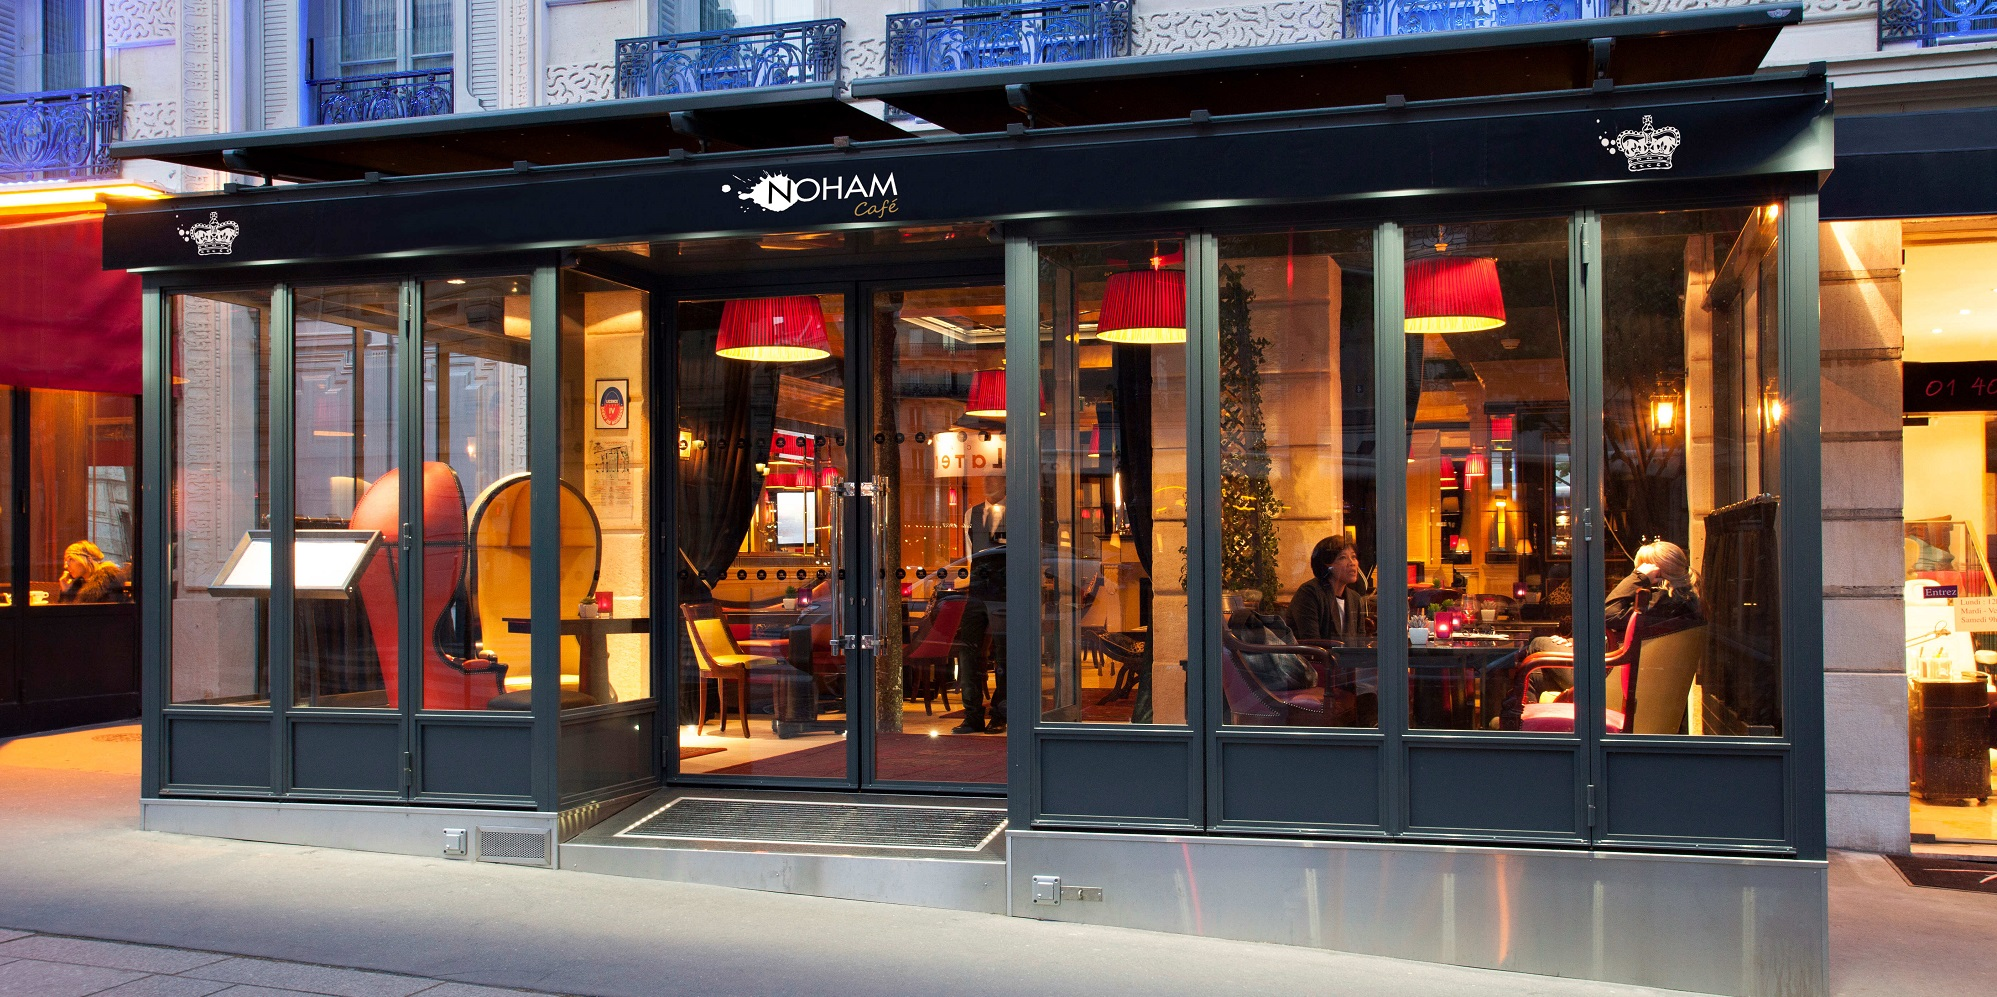 Brunch Noham Café (75017 Paris)